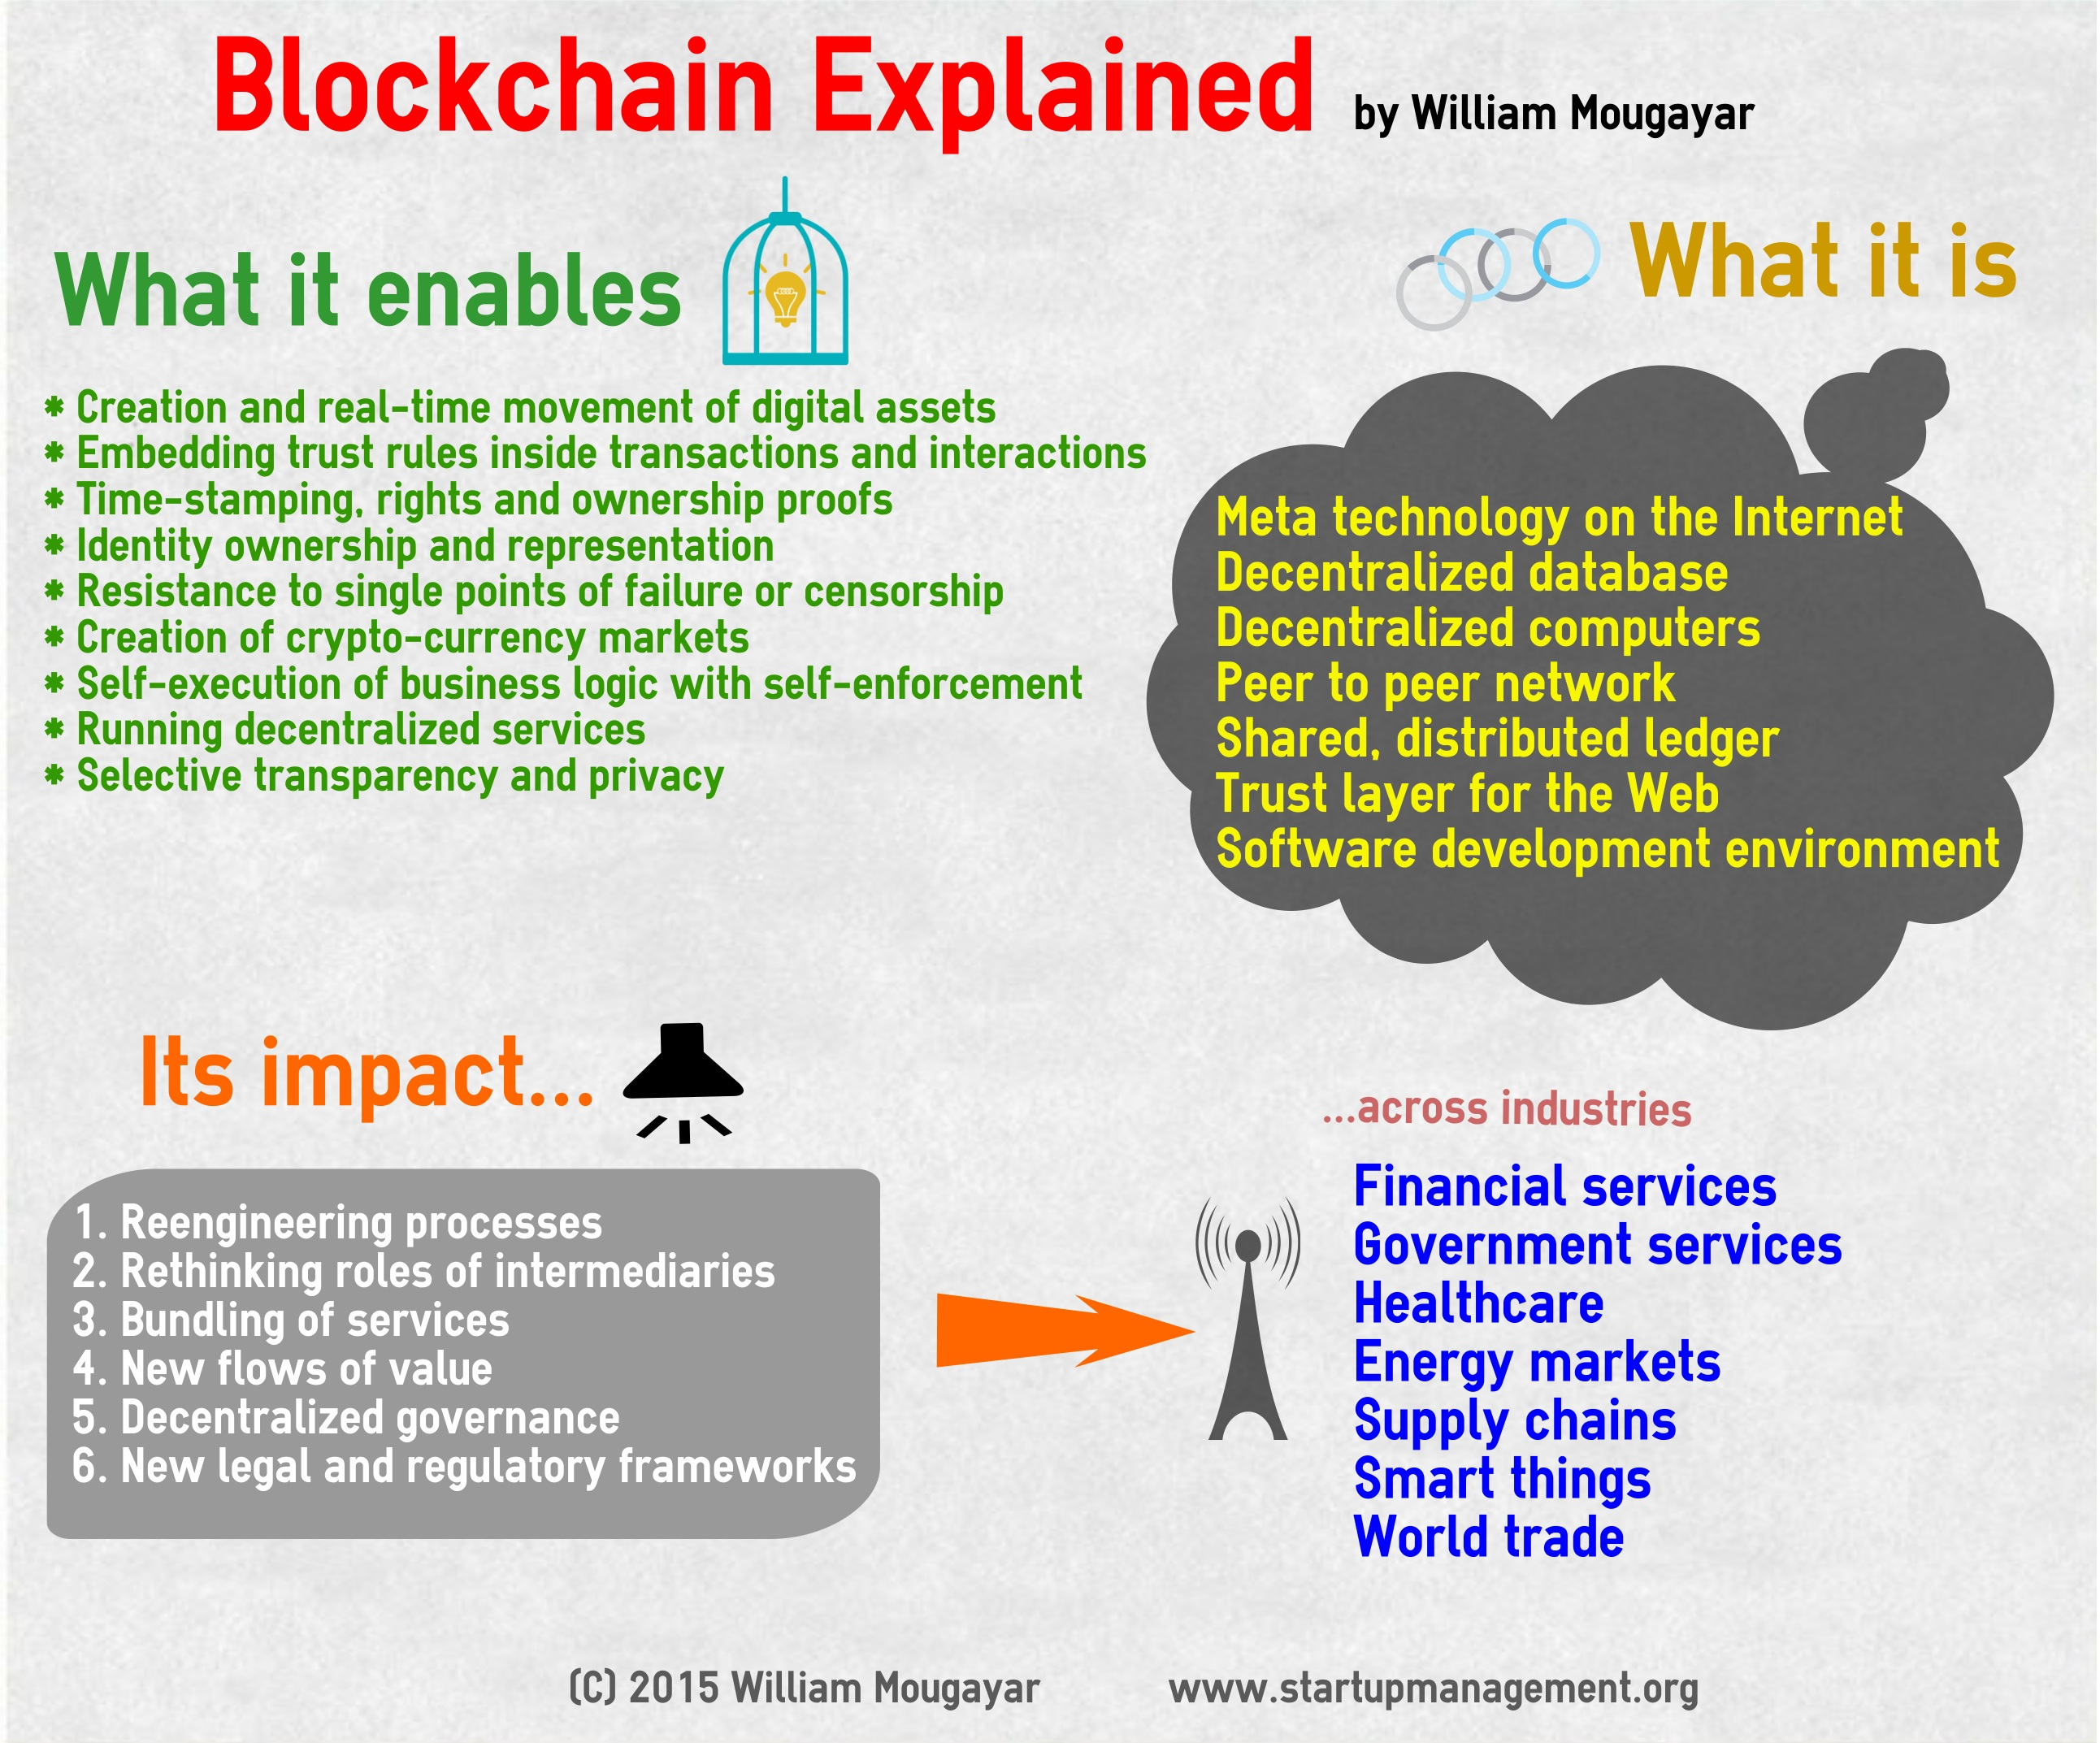 Explaining the Blockchain's Impact via an Infographic